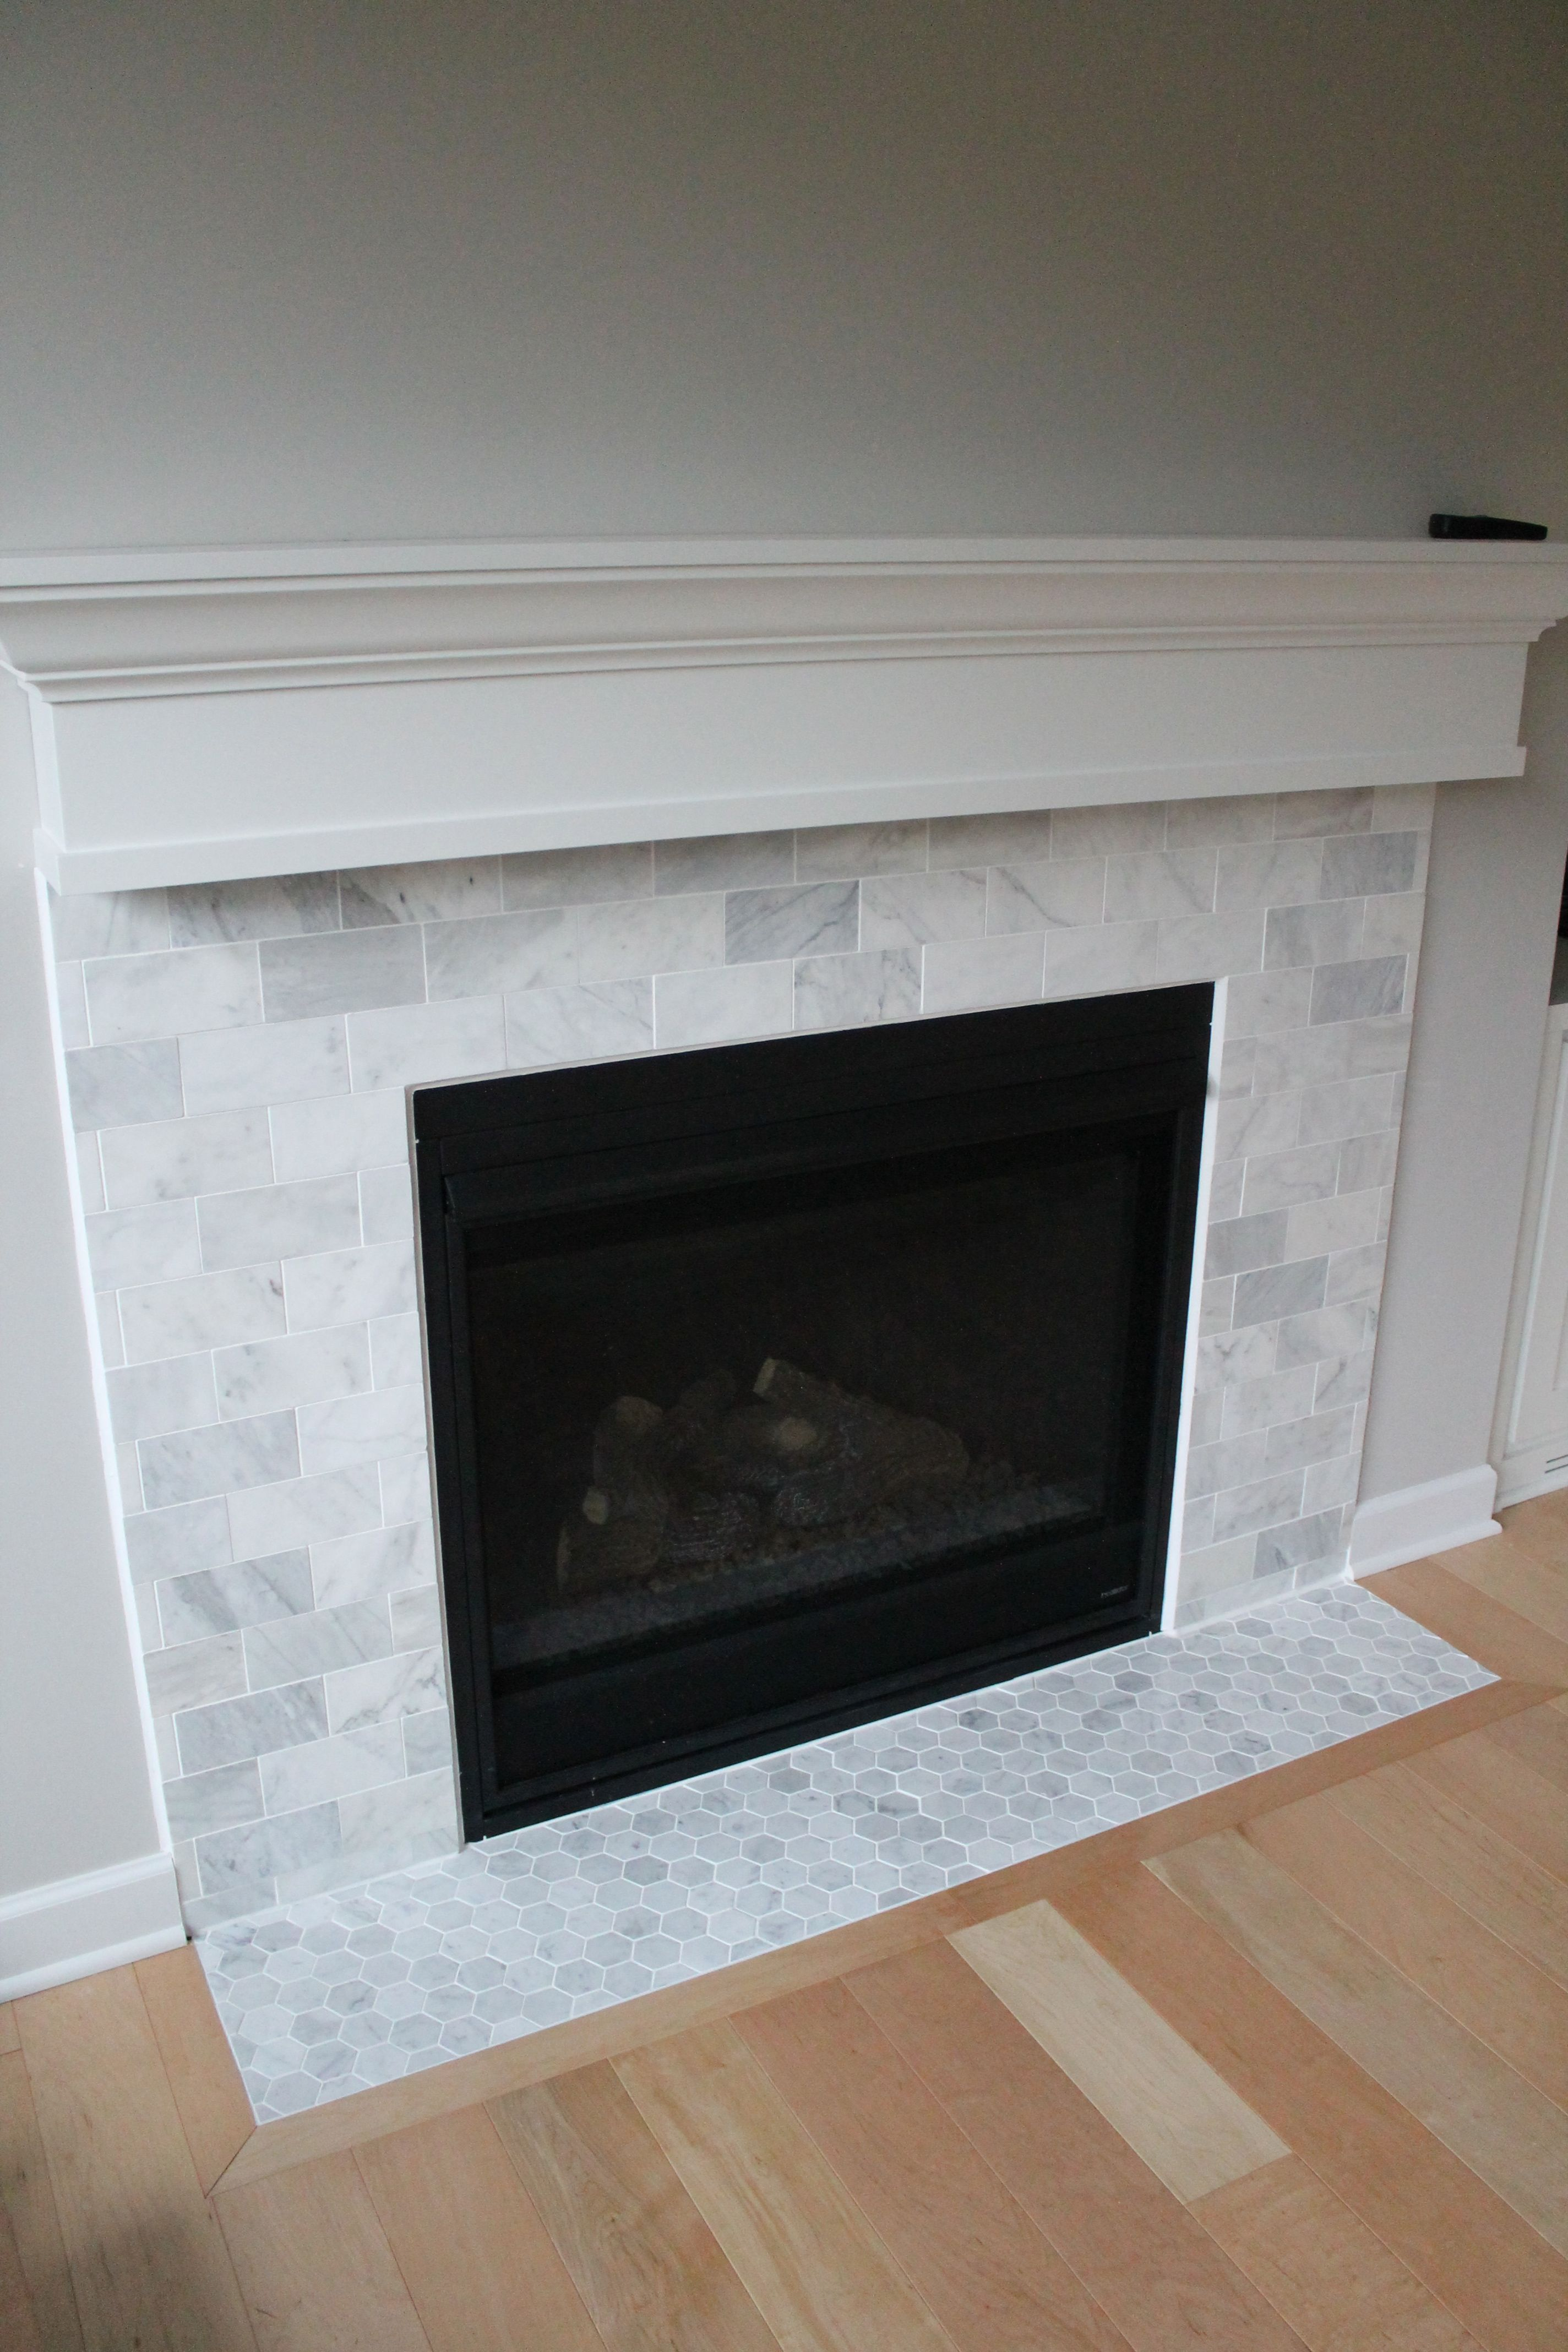 Gas Fireplace Facing Carrara Marble Fireplace Pictures Crate Furniture Ideas